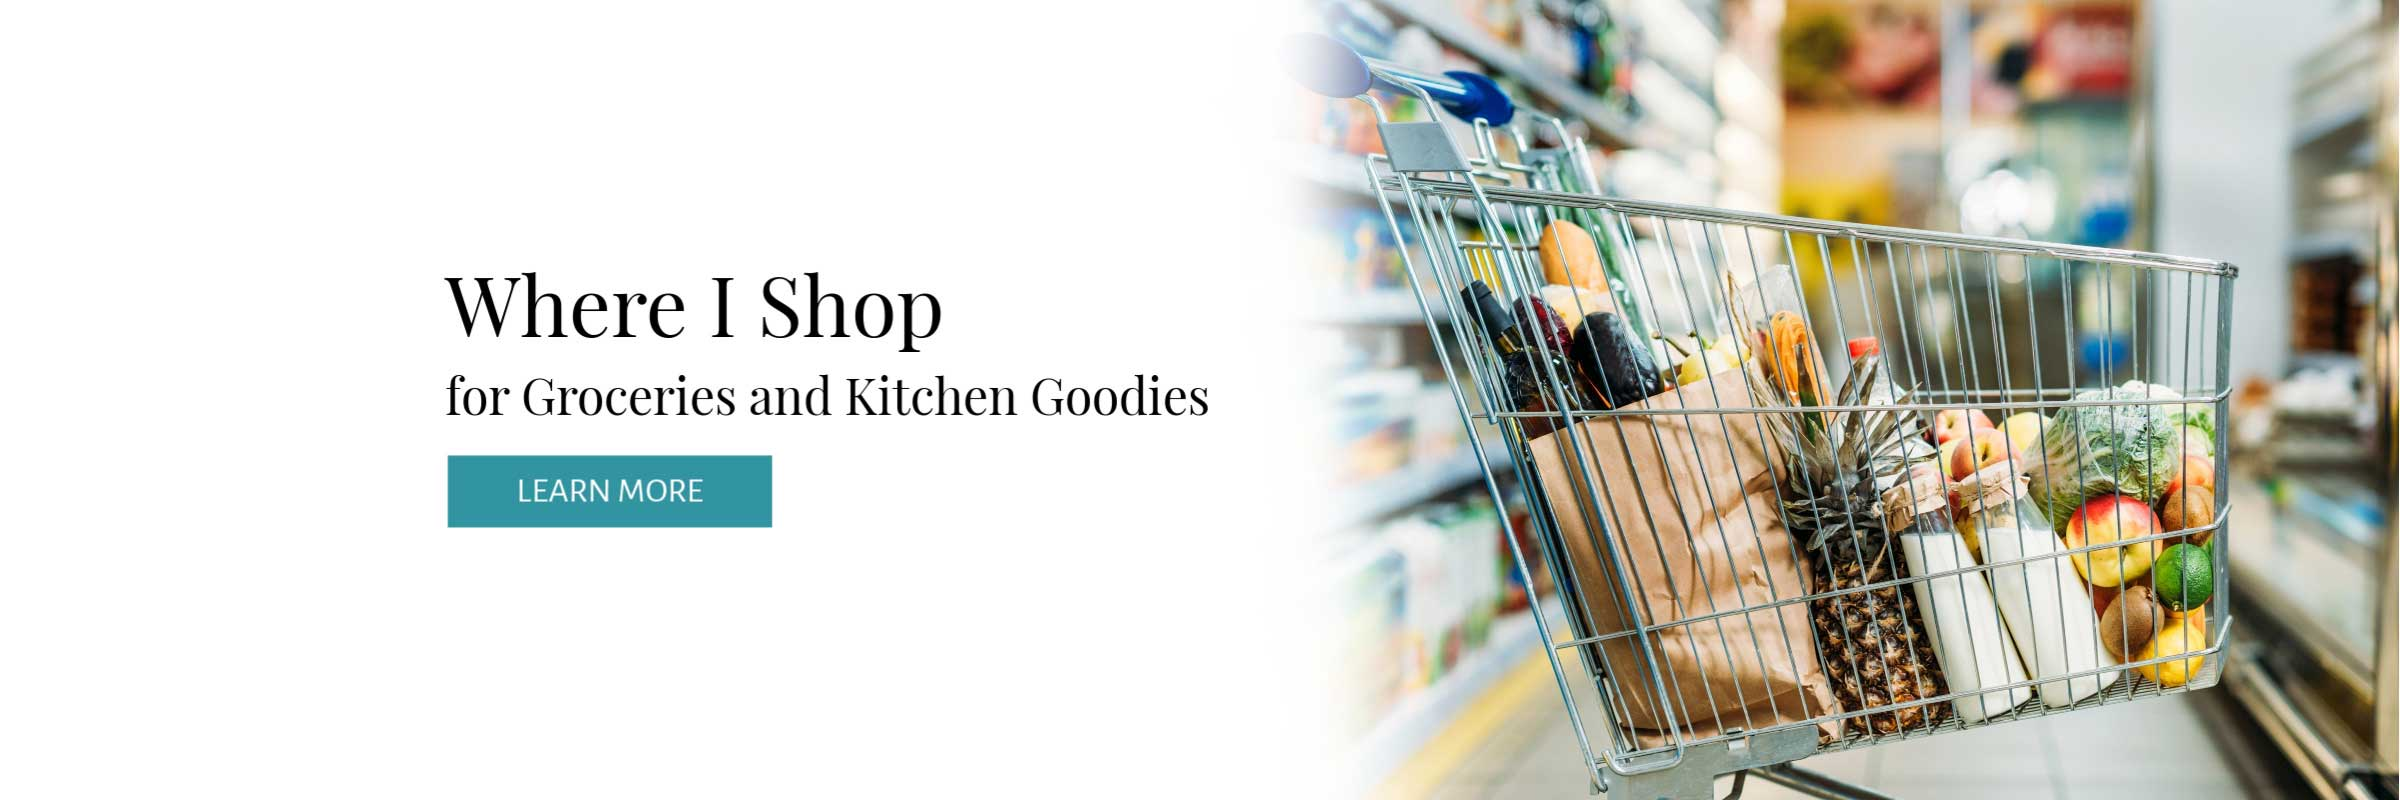 Where Well Made Wellness shops for groceries and kitchen goodies.